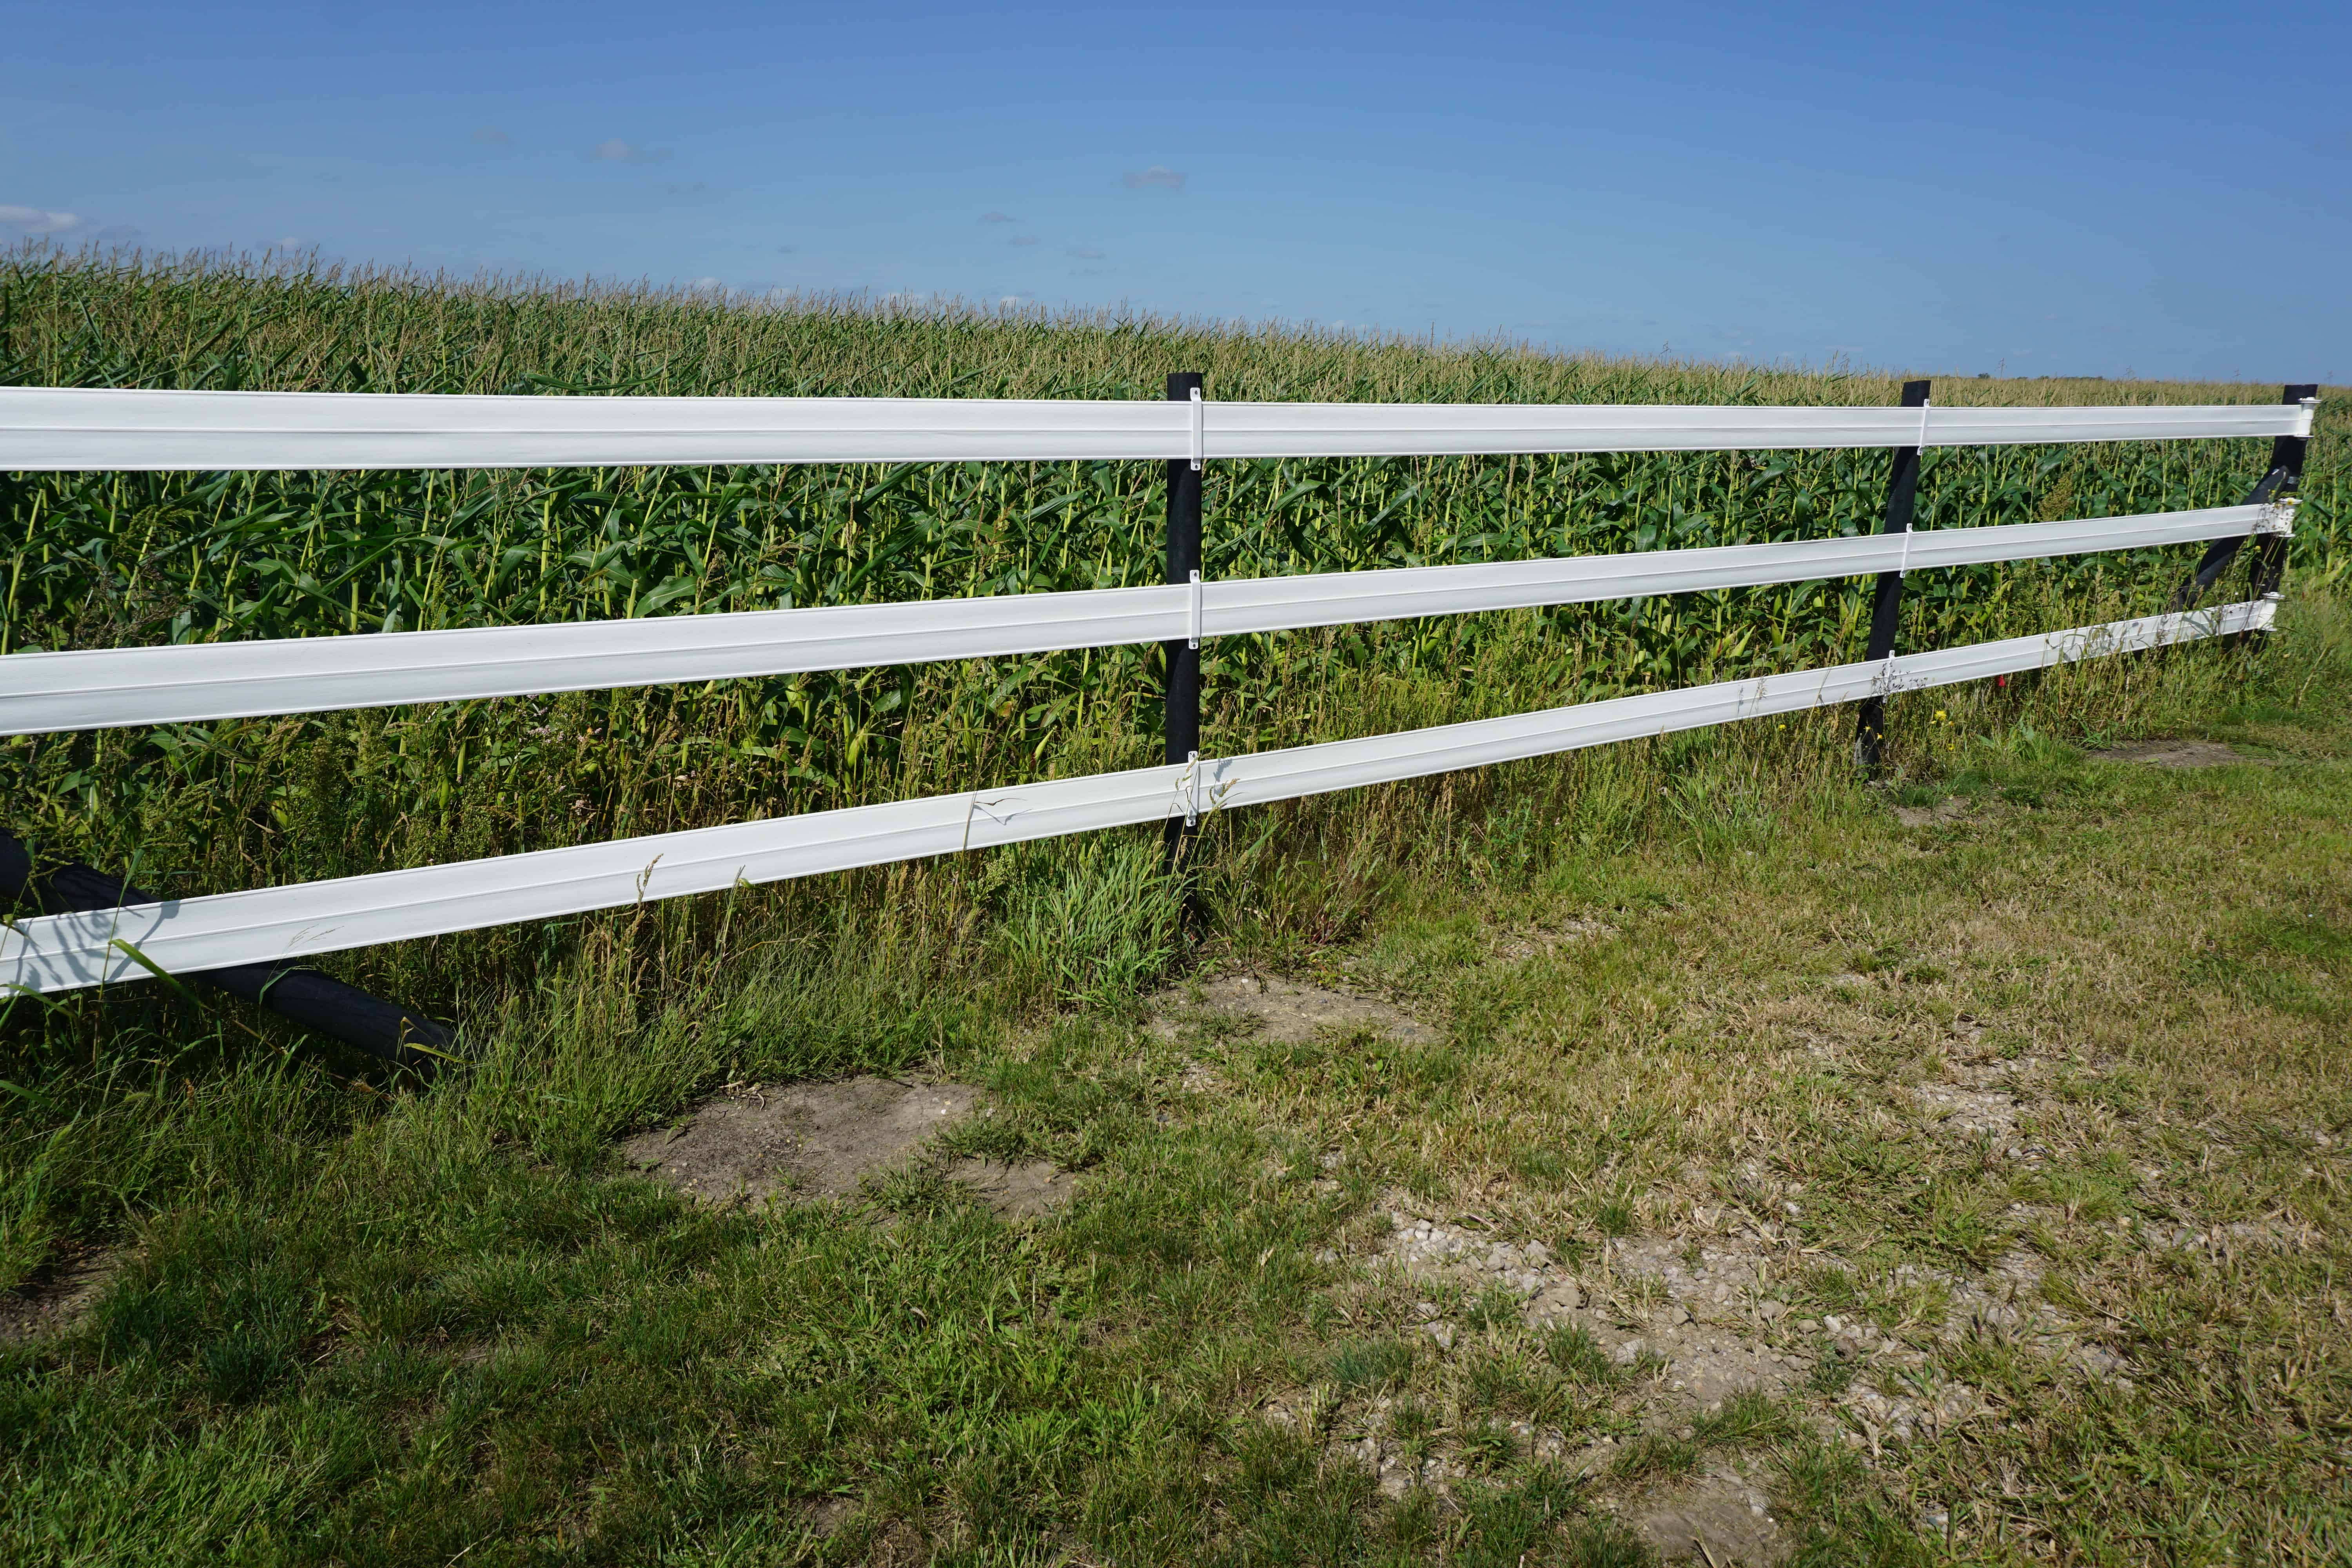 fencing in agricultural setting